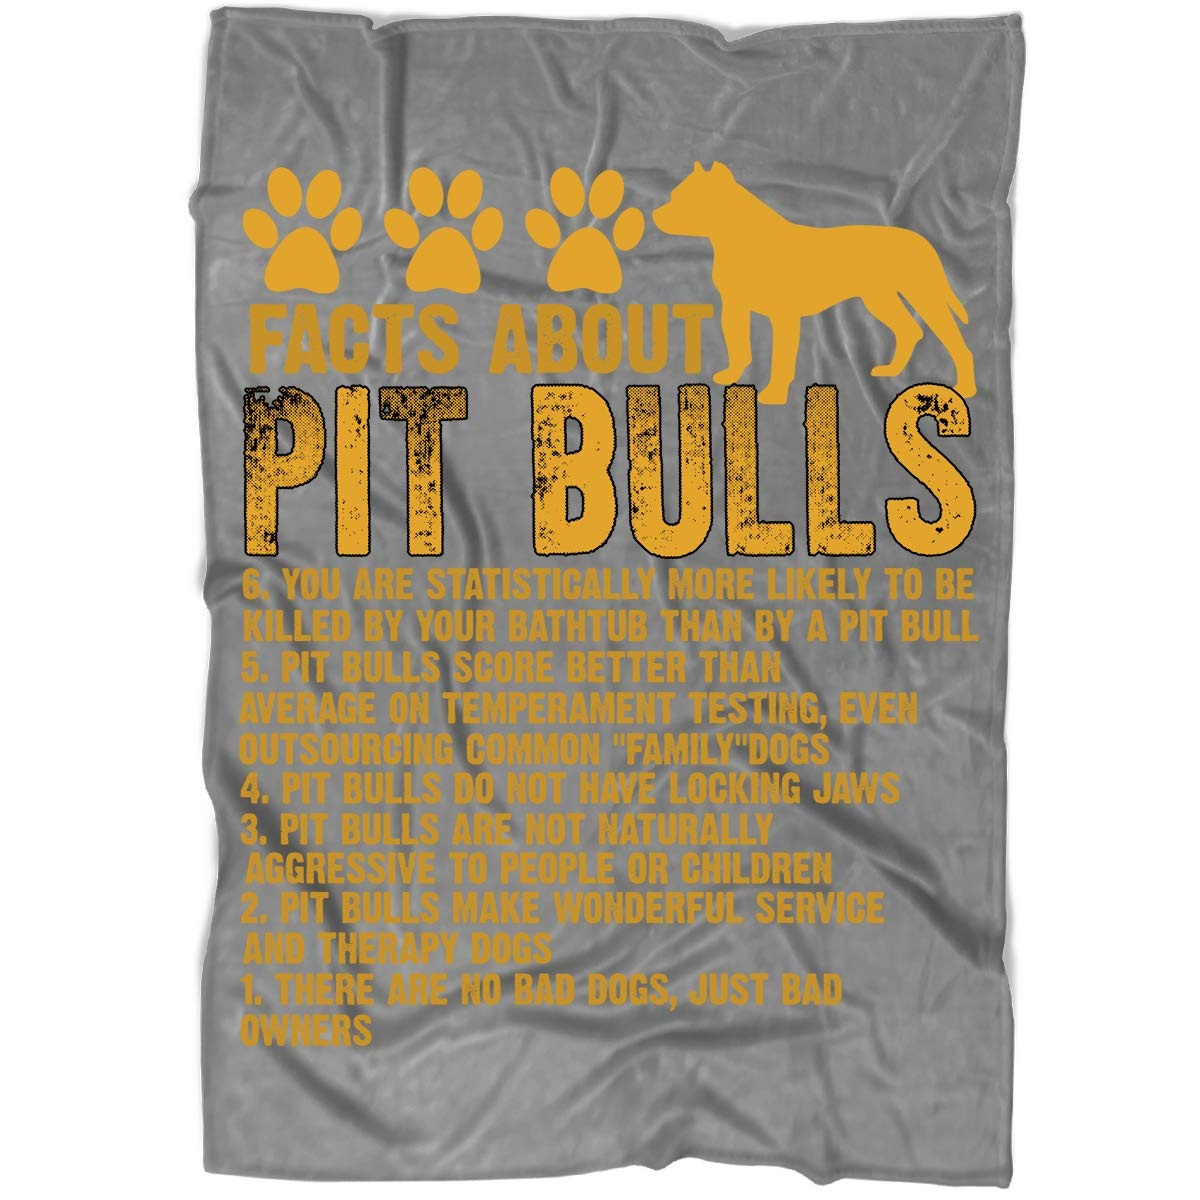 Fleece Blanket Dark Grey Medium Fleece Blanket (60\ Fleece Blanket Dark Grey Medium Fleece Blanket (60\ OAKSTORE Dog Mom Blanket Bed Couch, Facts About Pitbulls Blankets Perfect Layering Any Bed Provides Comfort Warmth Years (Medium Fleece Blanket (60 x50